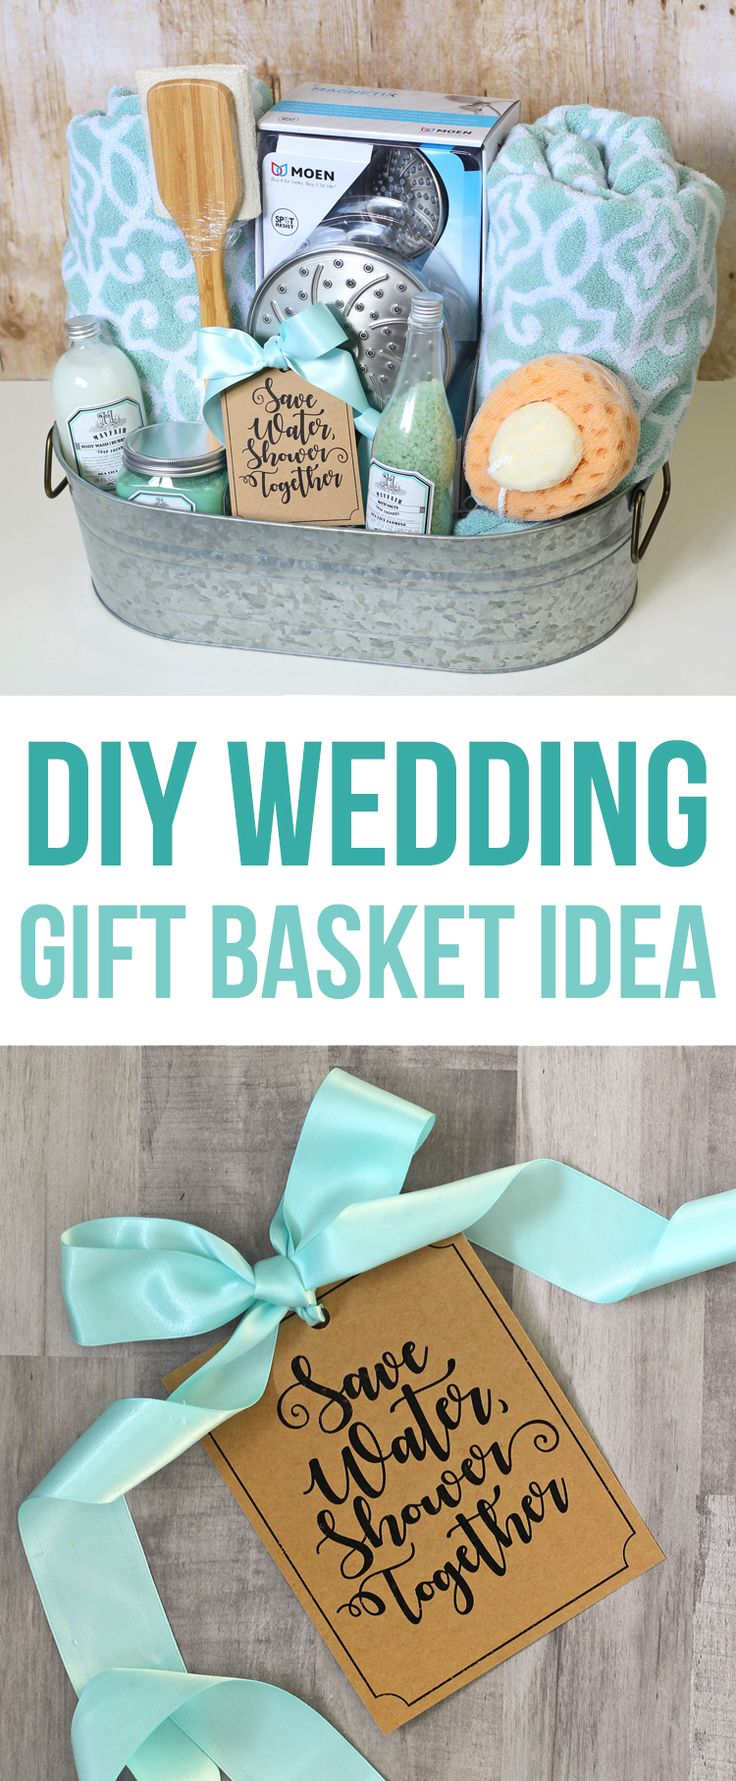 This DIY wedding gift basket idea has a shower theme and includes bath towels, a luxury shower head and other bath goodies, all packaged in a cute farmhouse galvanized metal tin. A unique wedding present the newlyweds didn't think to register for!  @moen {sponsored}